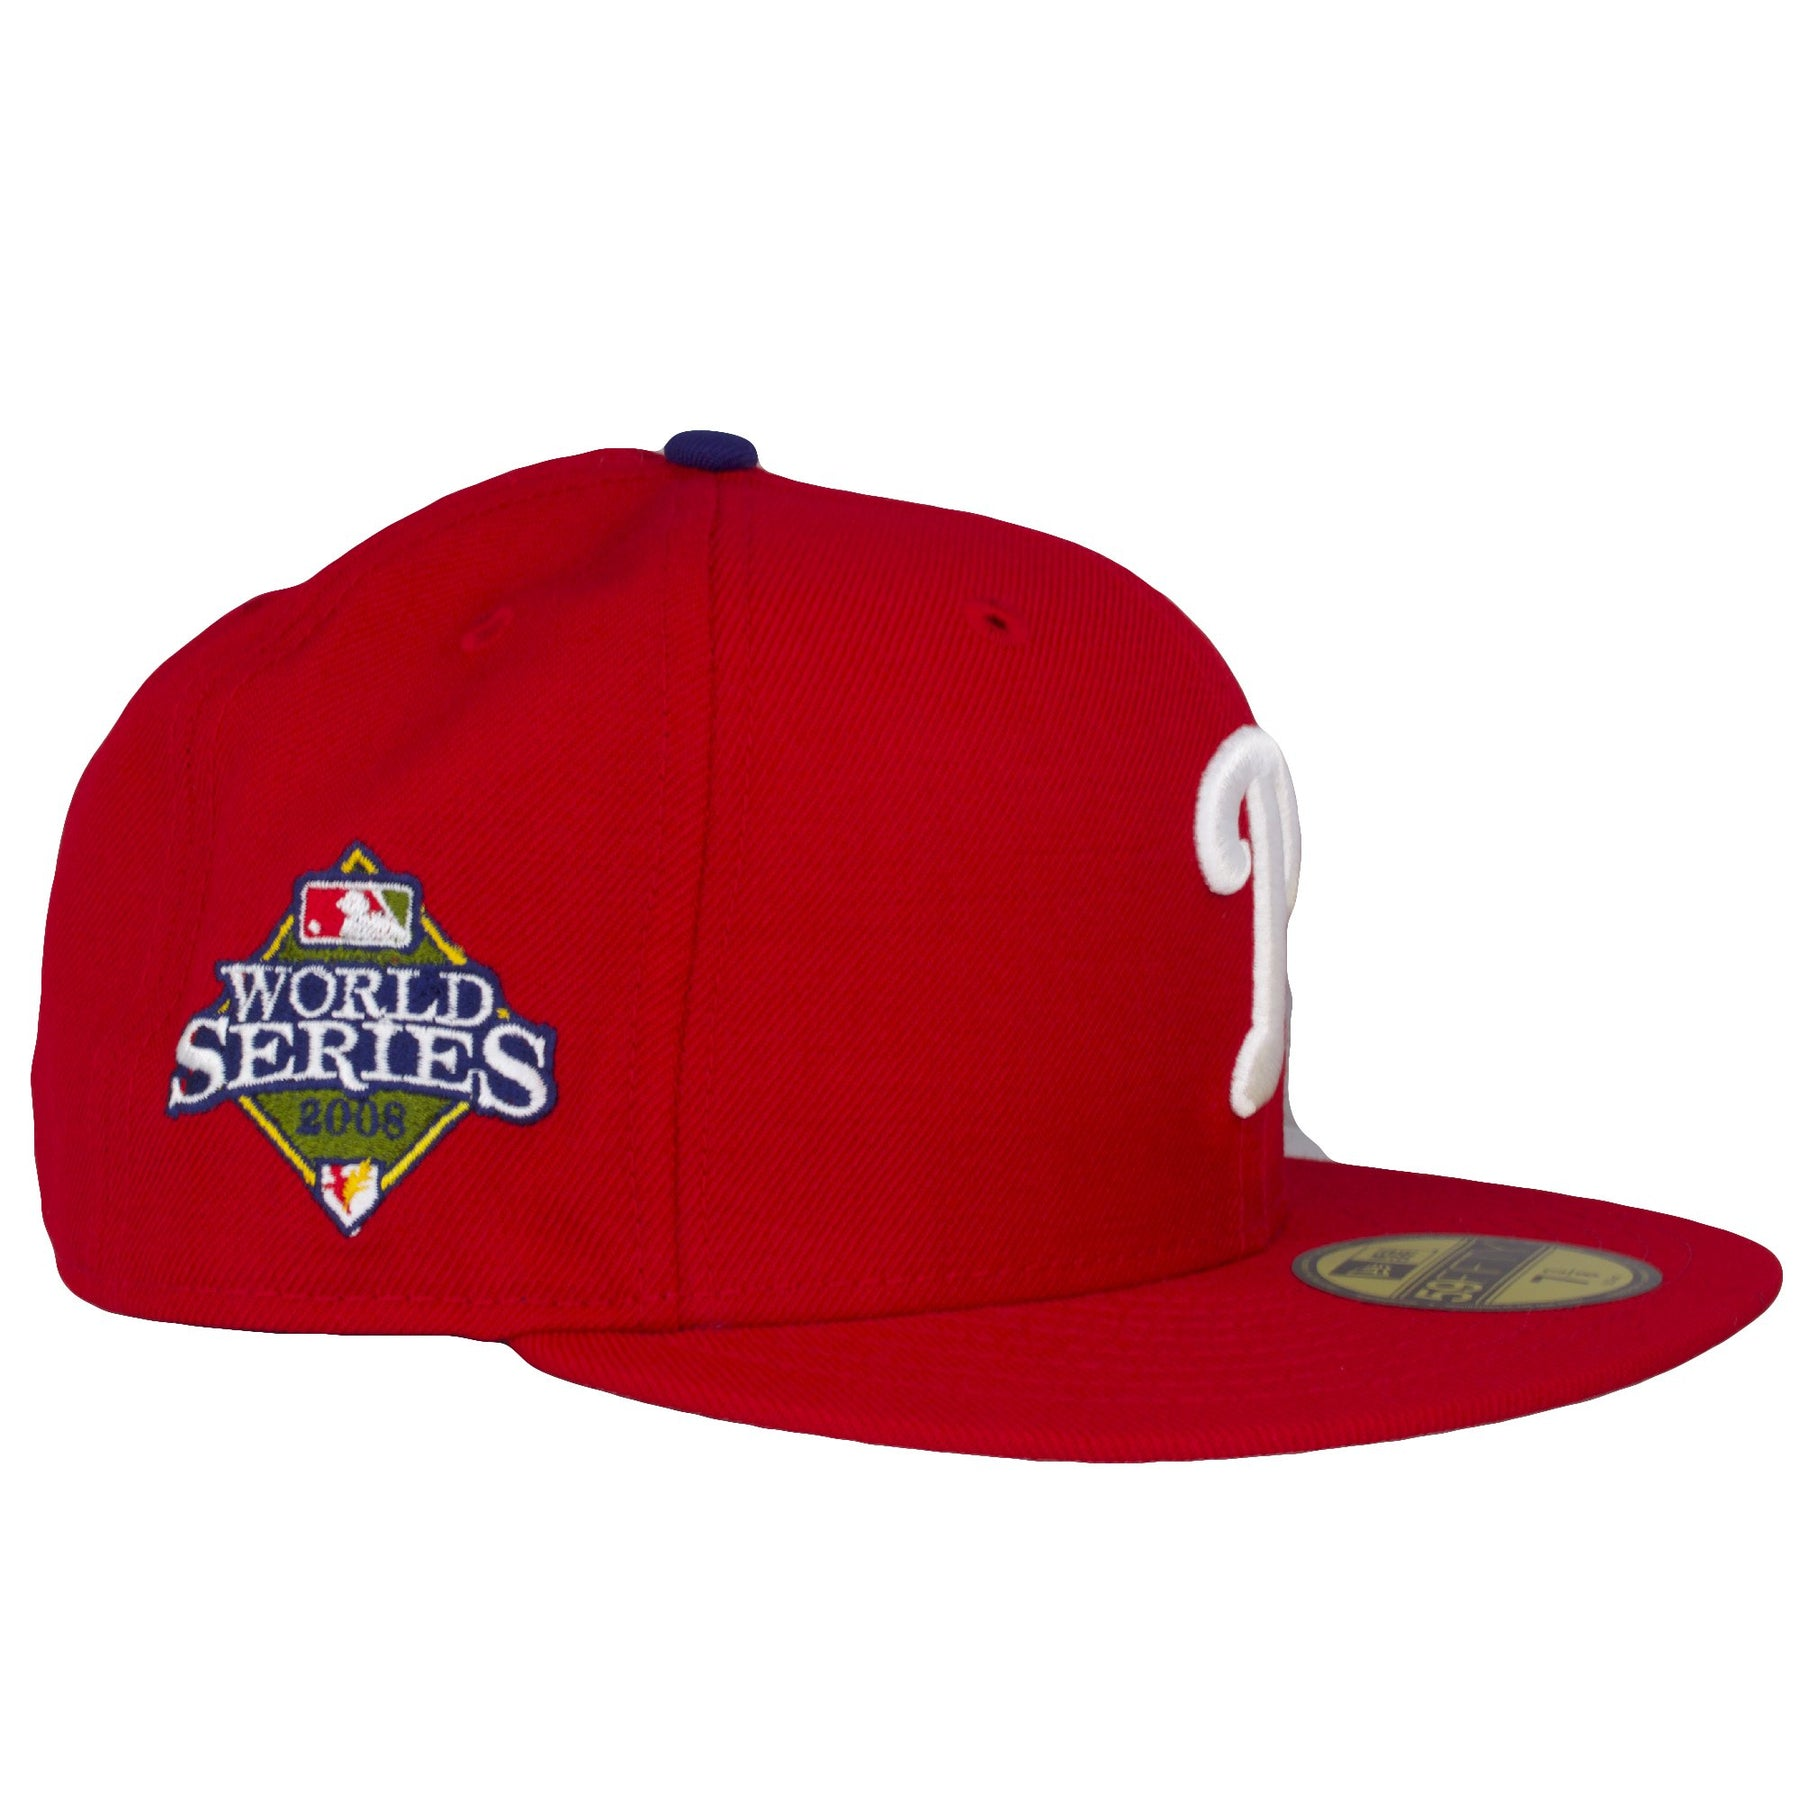 ... on the right side of the philadelphia phillies 2008 world series fitted  cap is the 2008 d5f82c02be4